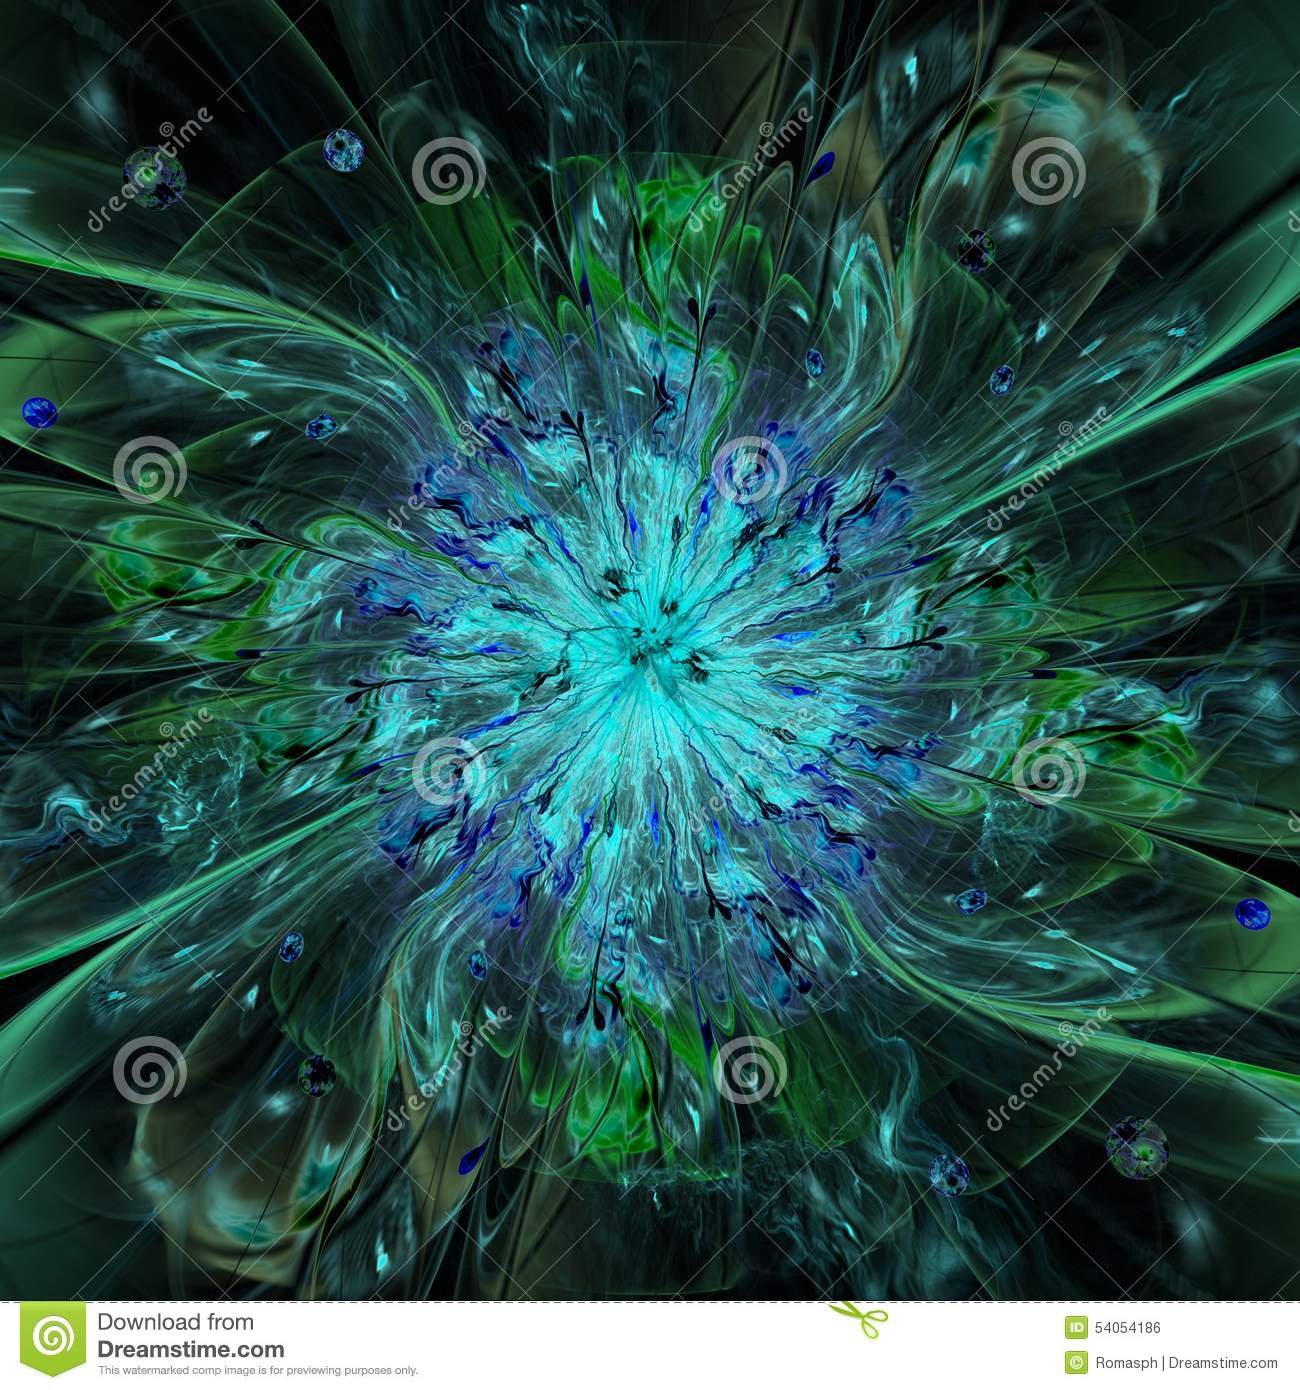 Abstract High Resolution Wallpaper With A Detailed Modern Exotic Looking Shining Flower In The Center And Decorative Pattern Beams